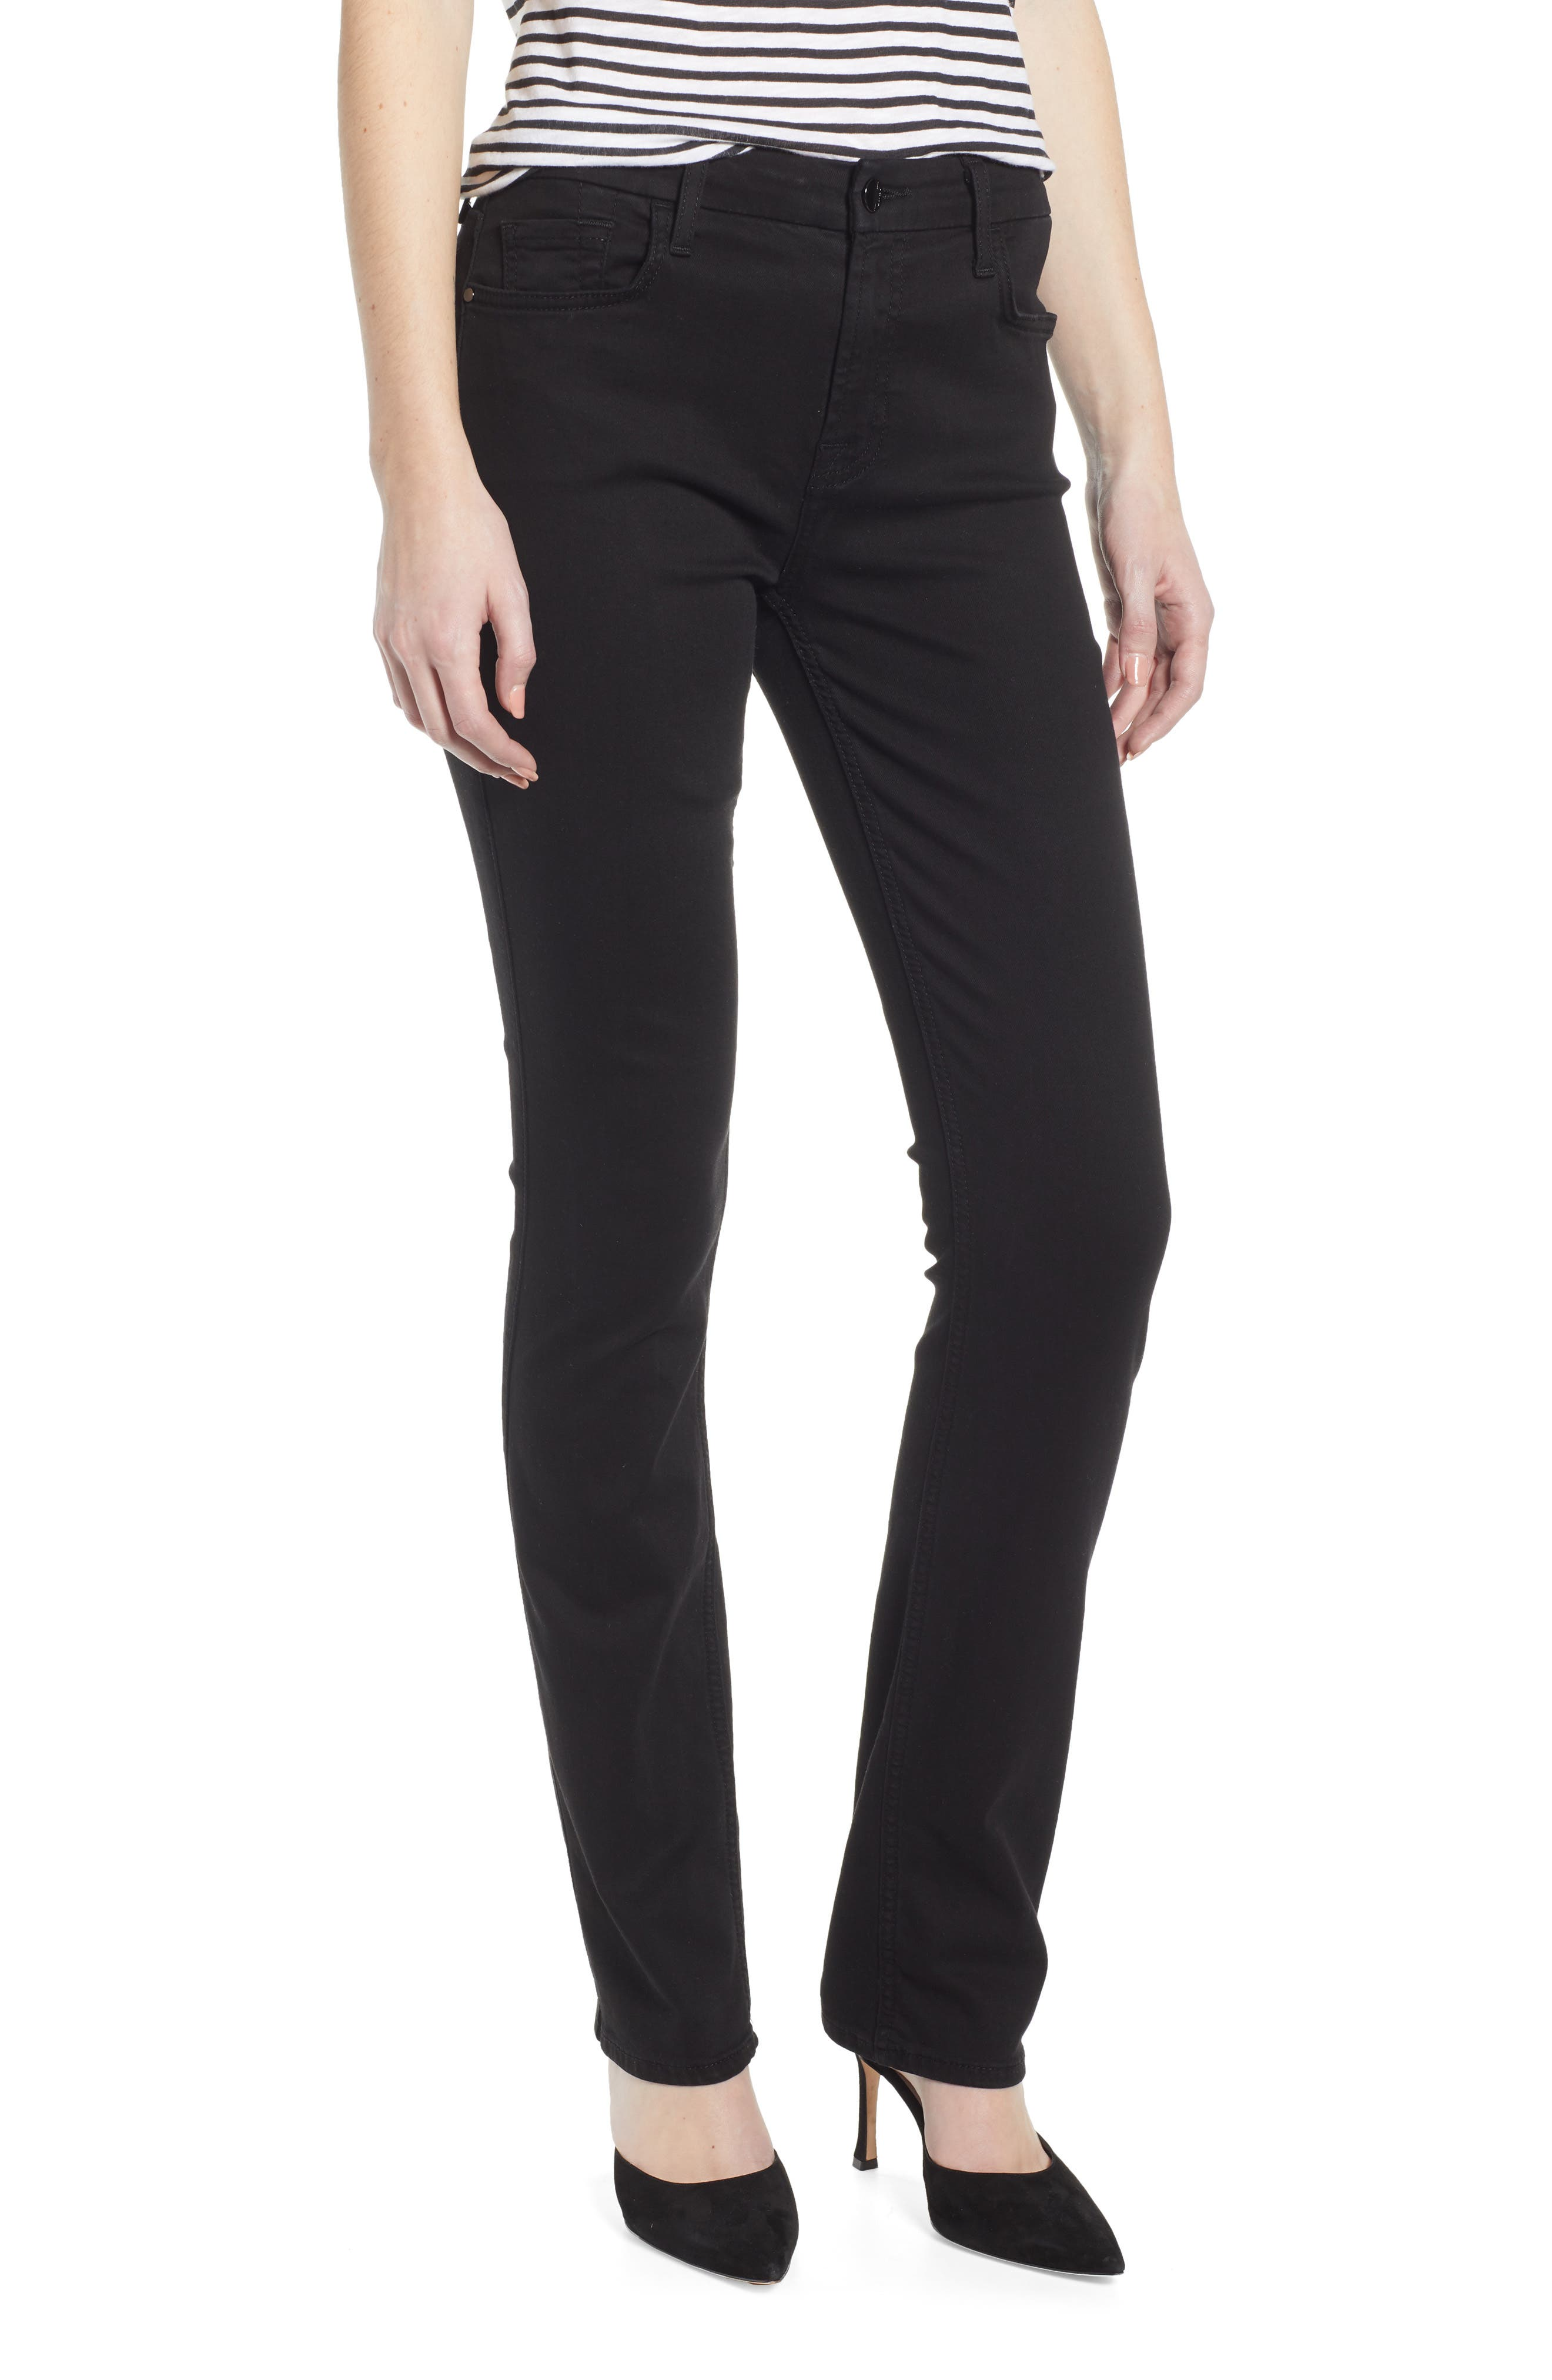 JEN7 BY 7 FOR ALL MANKIND, Stretch Slim Straight Leg Jeans, Main thumbnail 1, color, CLASSIC BLACK NOIR